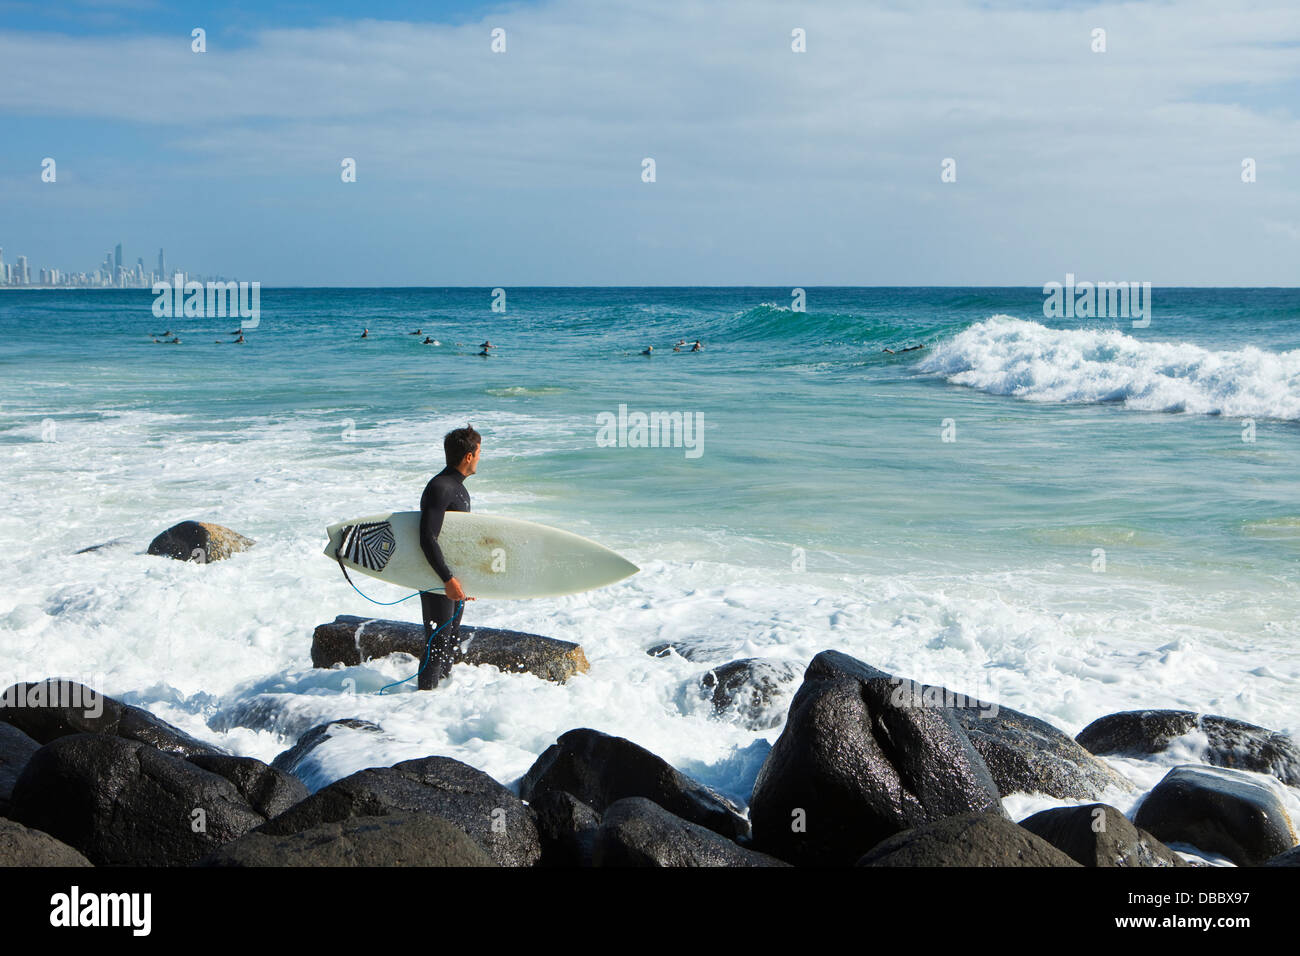 Surfer looking out to sea. Burleigh Heads, Gold Coast, Queensland, Australia - Stock Image